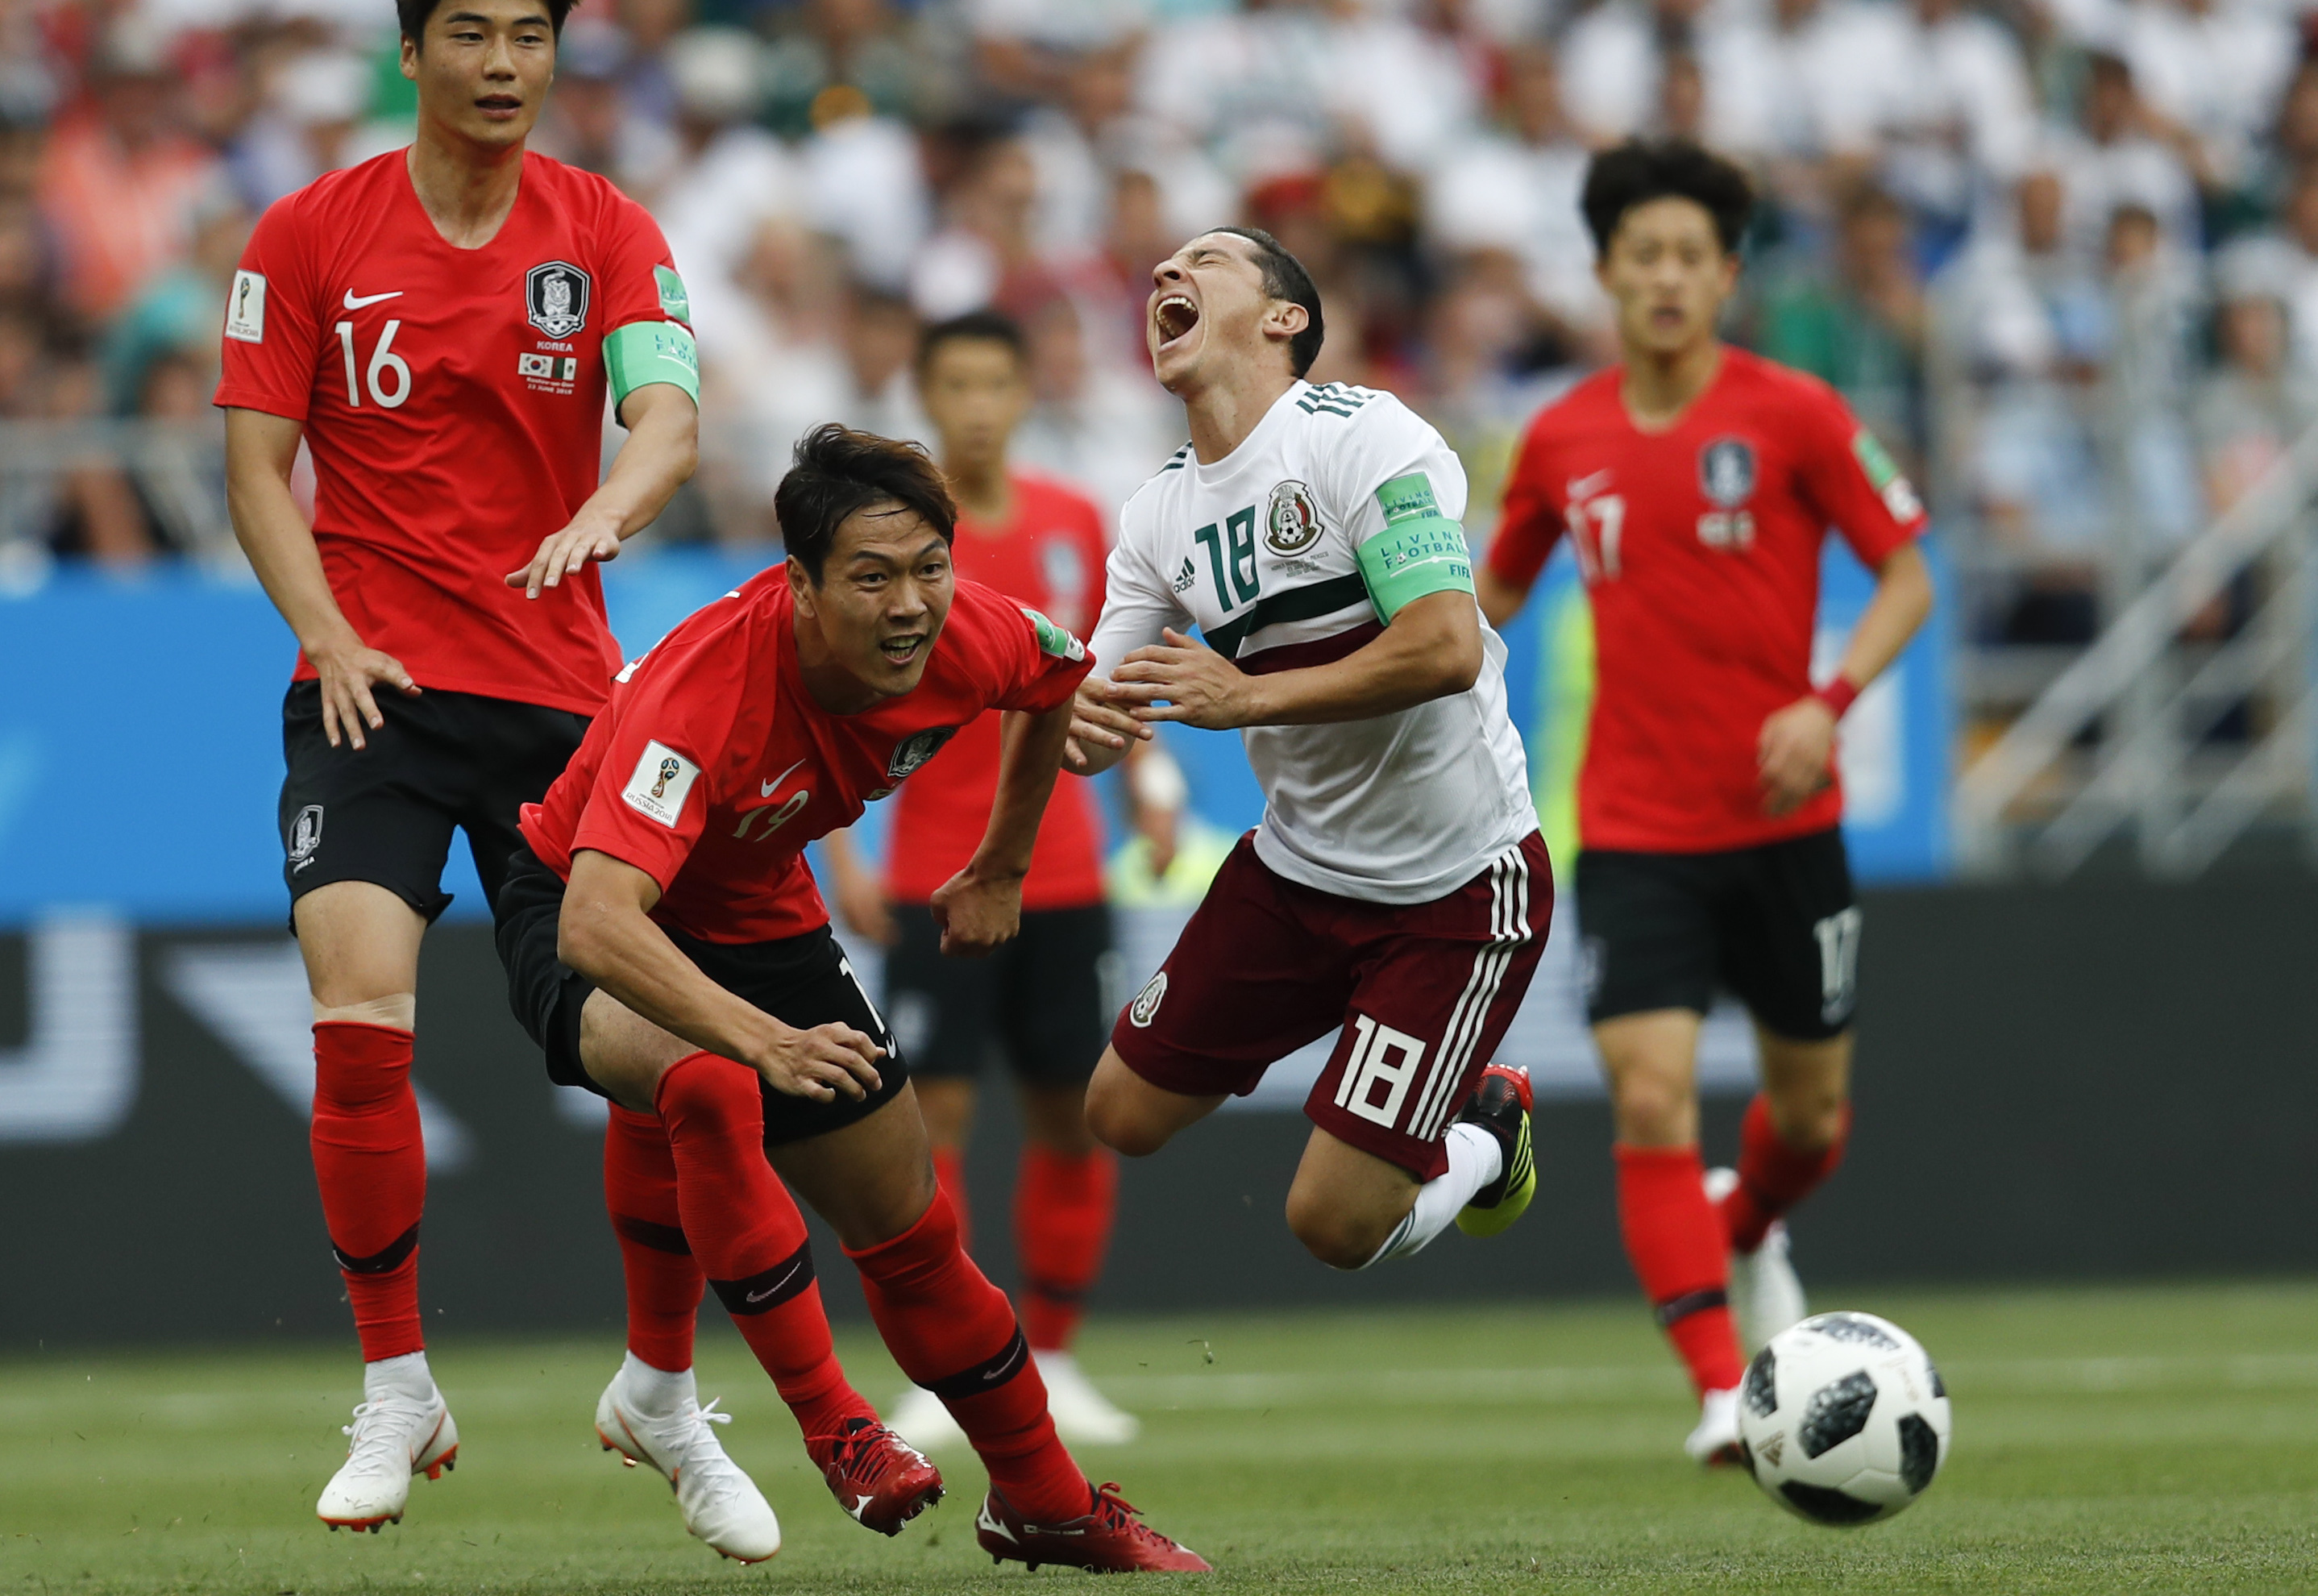 "<div class=""meta image-caption""><div class=""origin-logo origin-image none""><span>none</span></div><span class=""caption-text"">Mexico's Andres Guardado, right, challenges for the ball with South Korea's Kim Young-gwon during the group F match in the Rostov Arena on June 23. (Eduardo Verdugo/AP Photo)</span></div>"